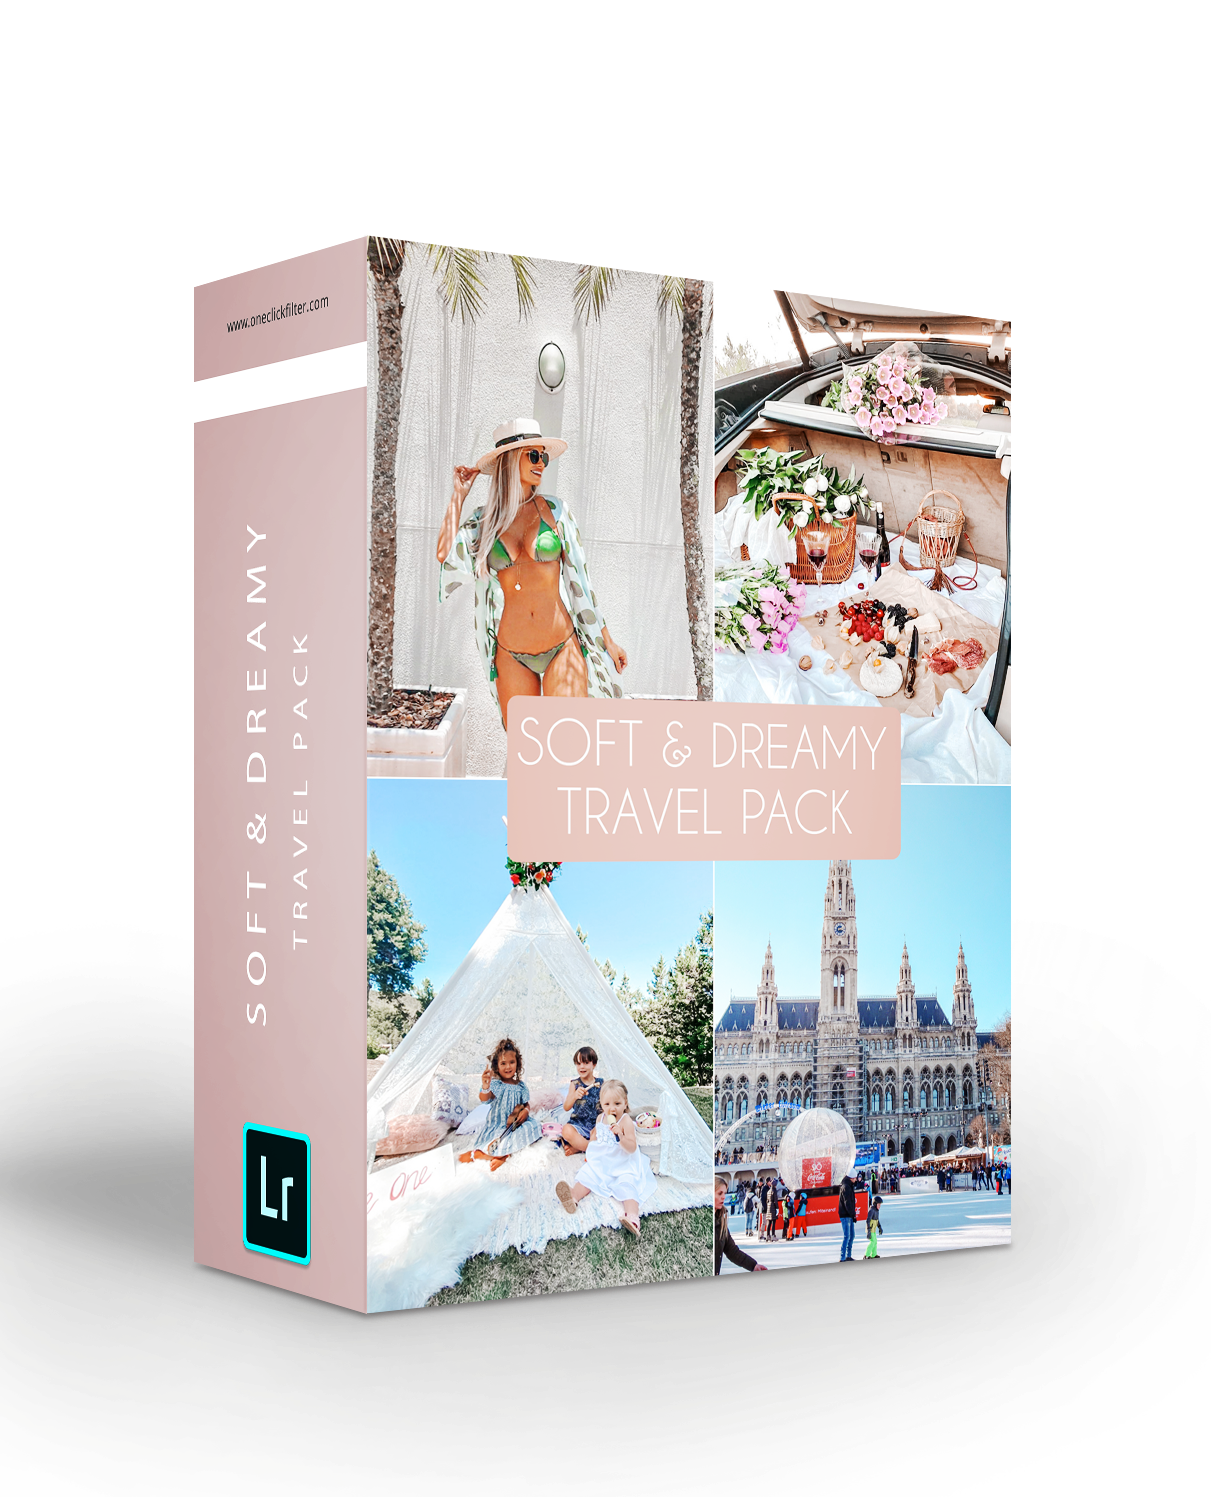 Soft & Dreamy Travel Pack - The Dreamy Photographer. One Click Filter Presets